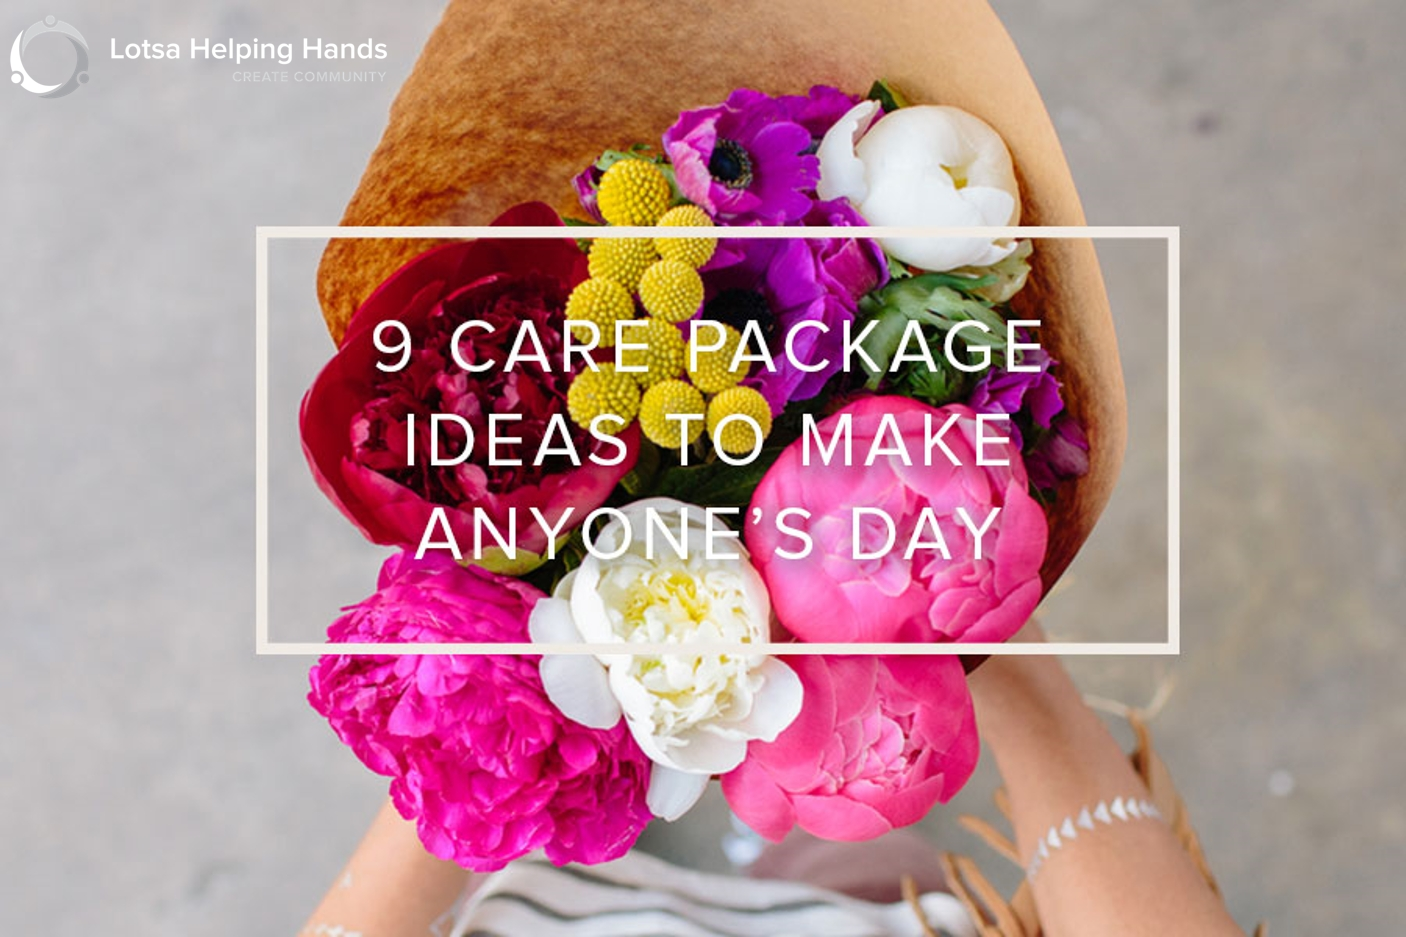 9 care package ideas to make anyone's day | lotsa helping hands